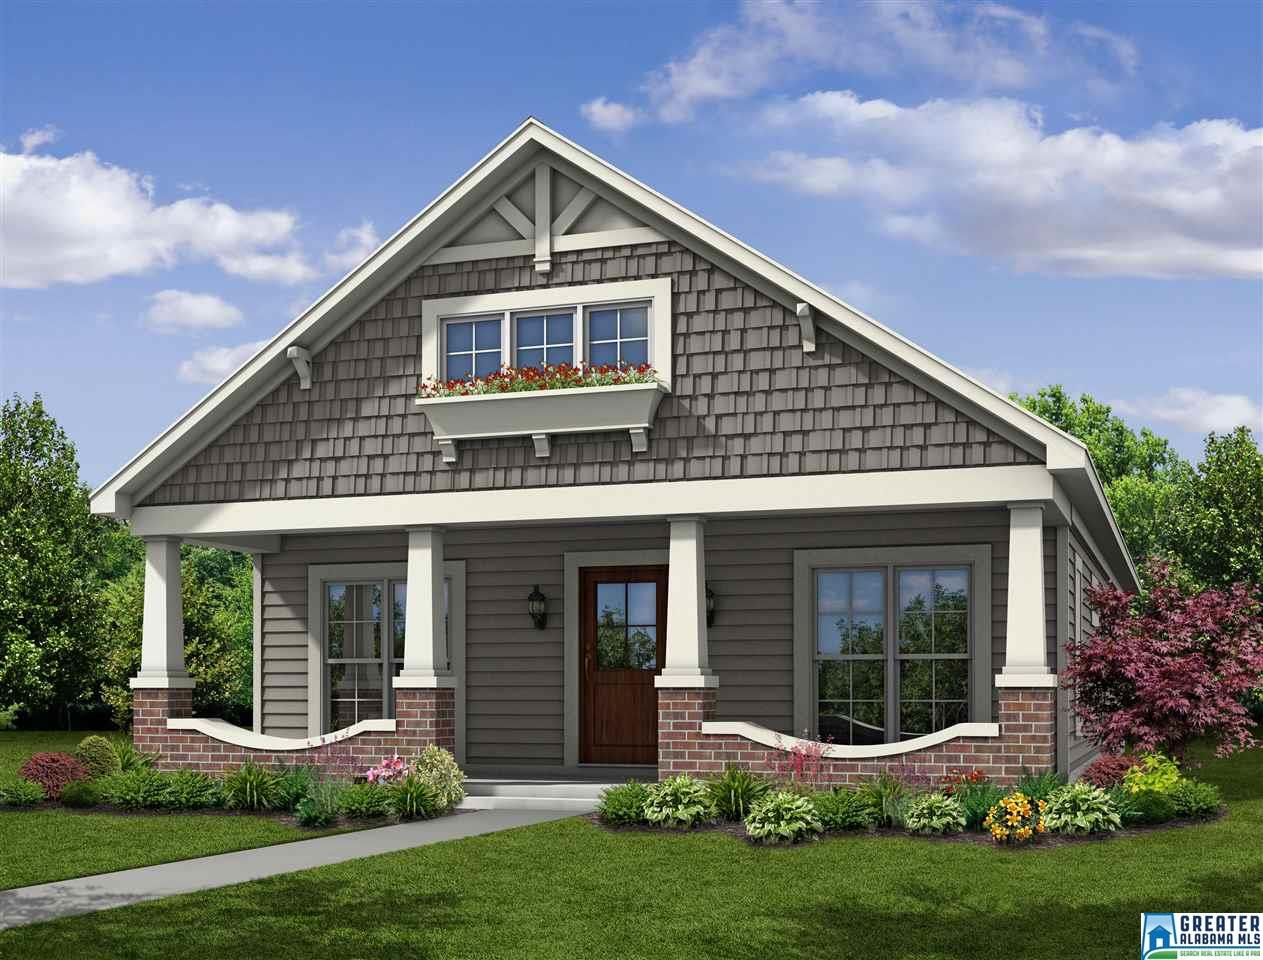 Grants Mill Valley - New Homes in Irondale 858855